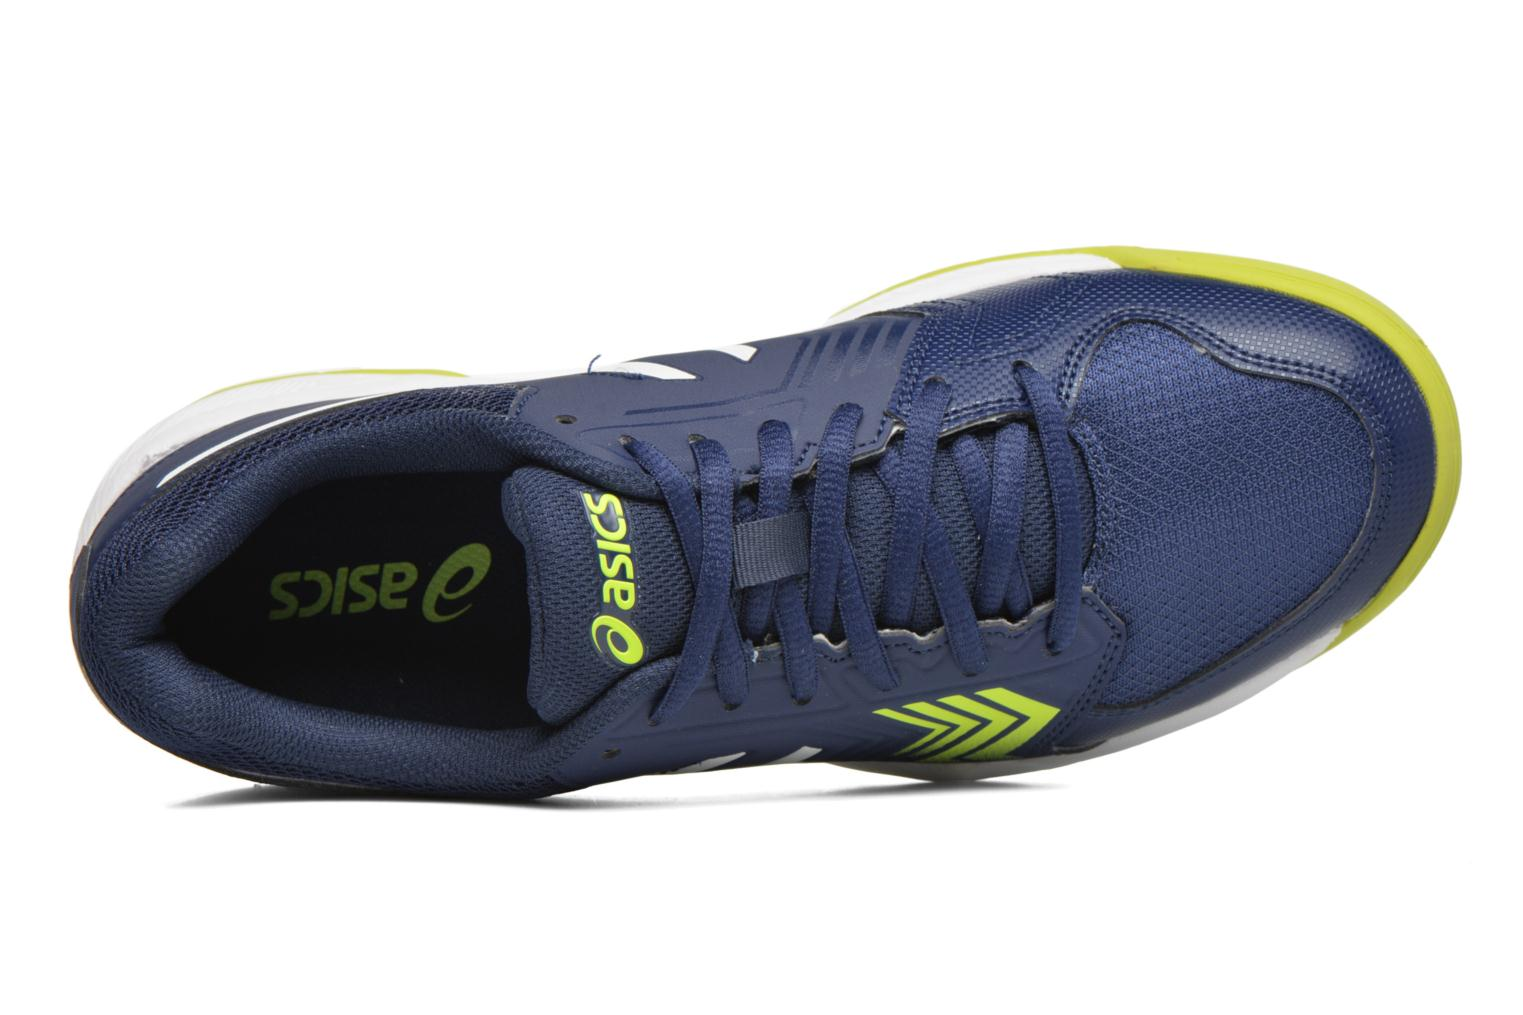 Gel-Dedicate 5 Indigo Blue/White/Safety Yellow